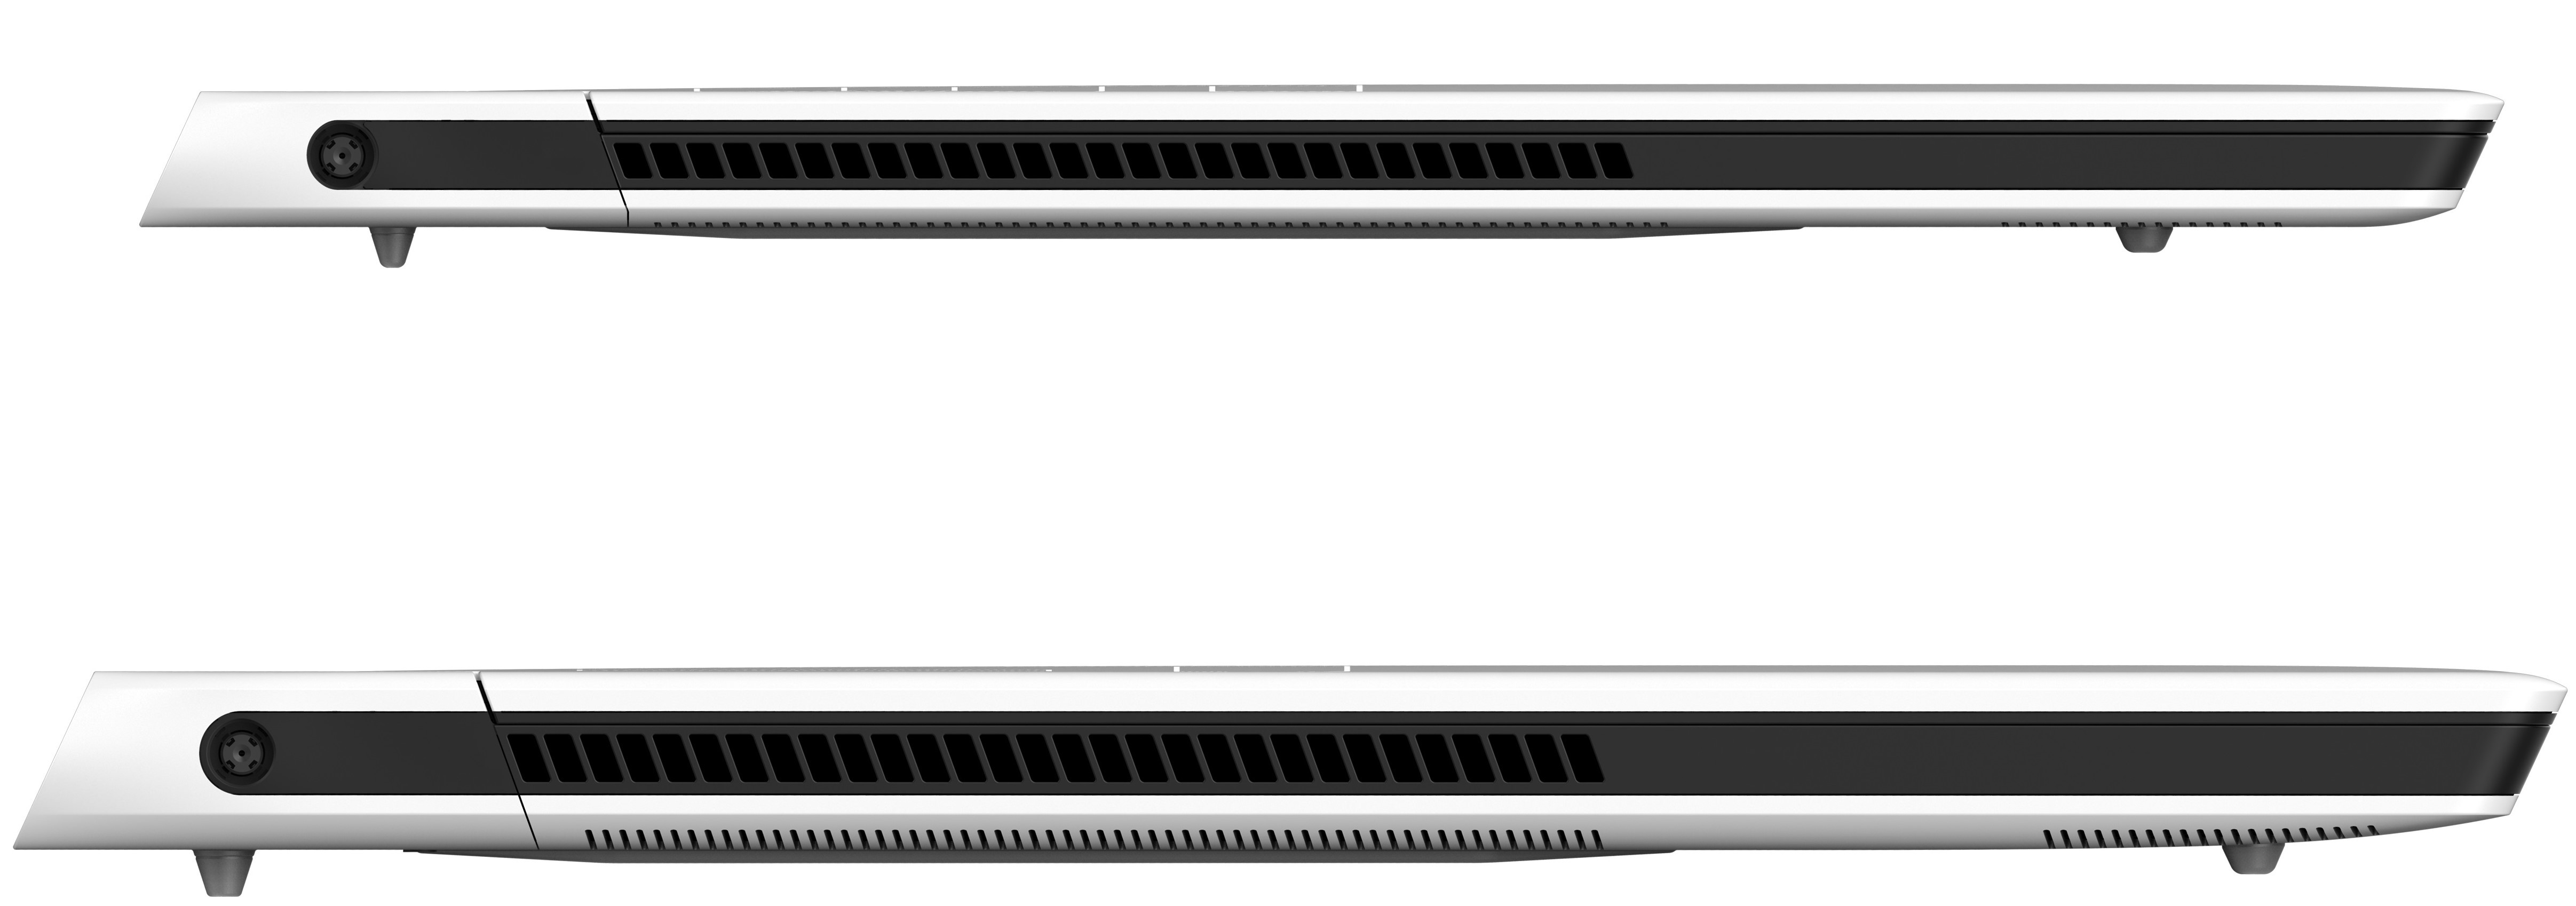 Alienware x17 and x15 seen form the side with the lids closed